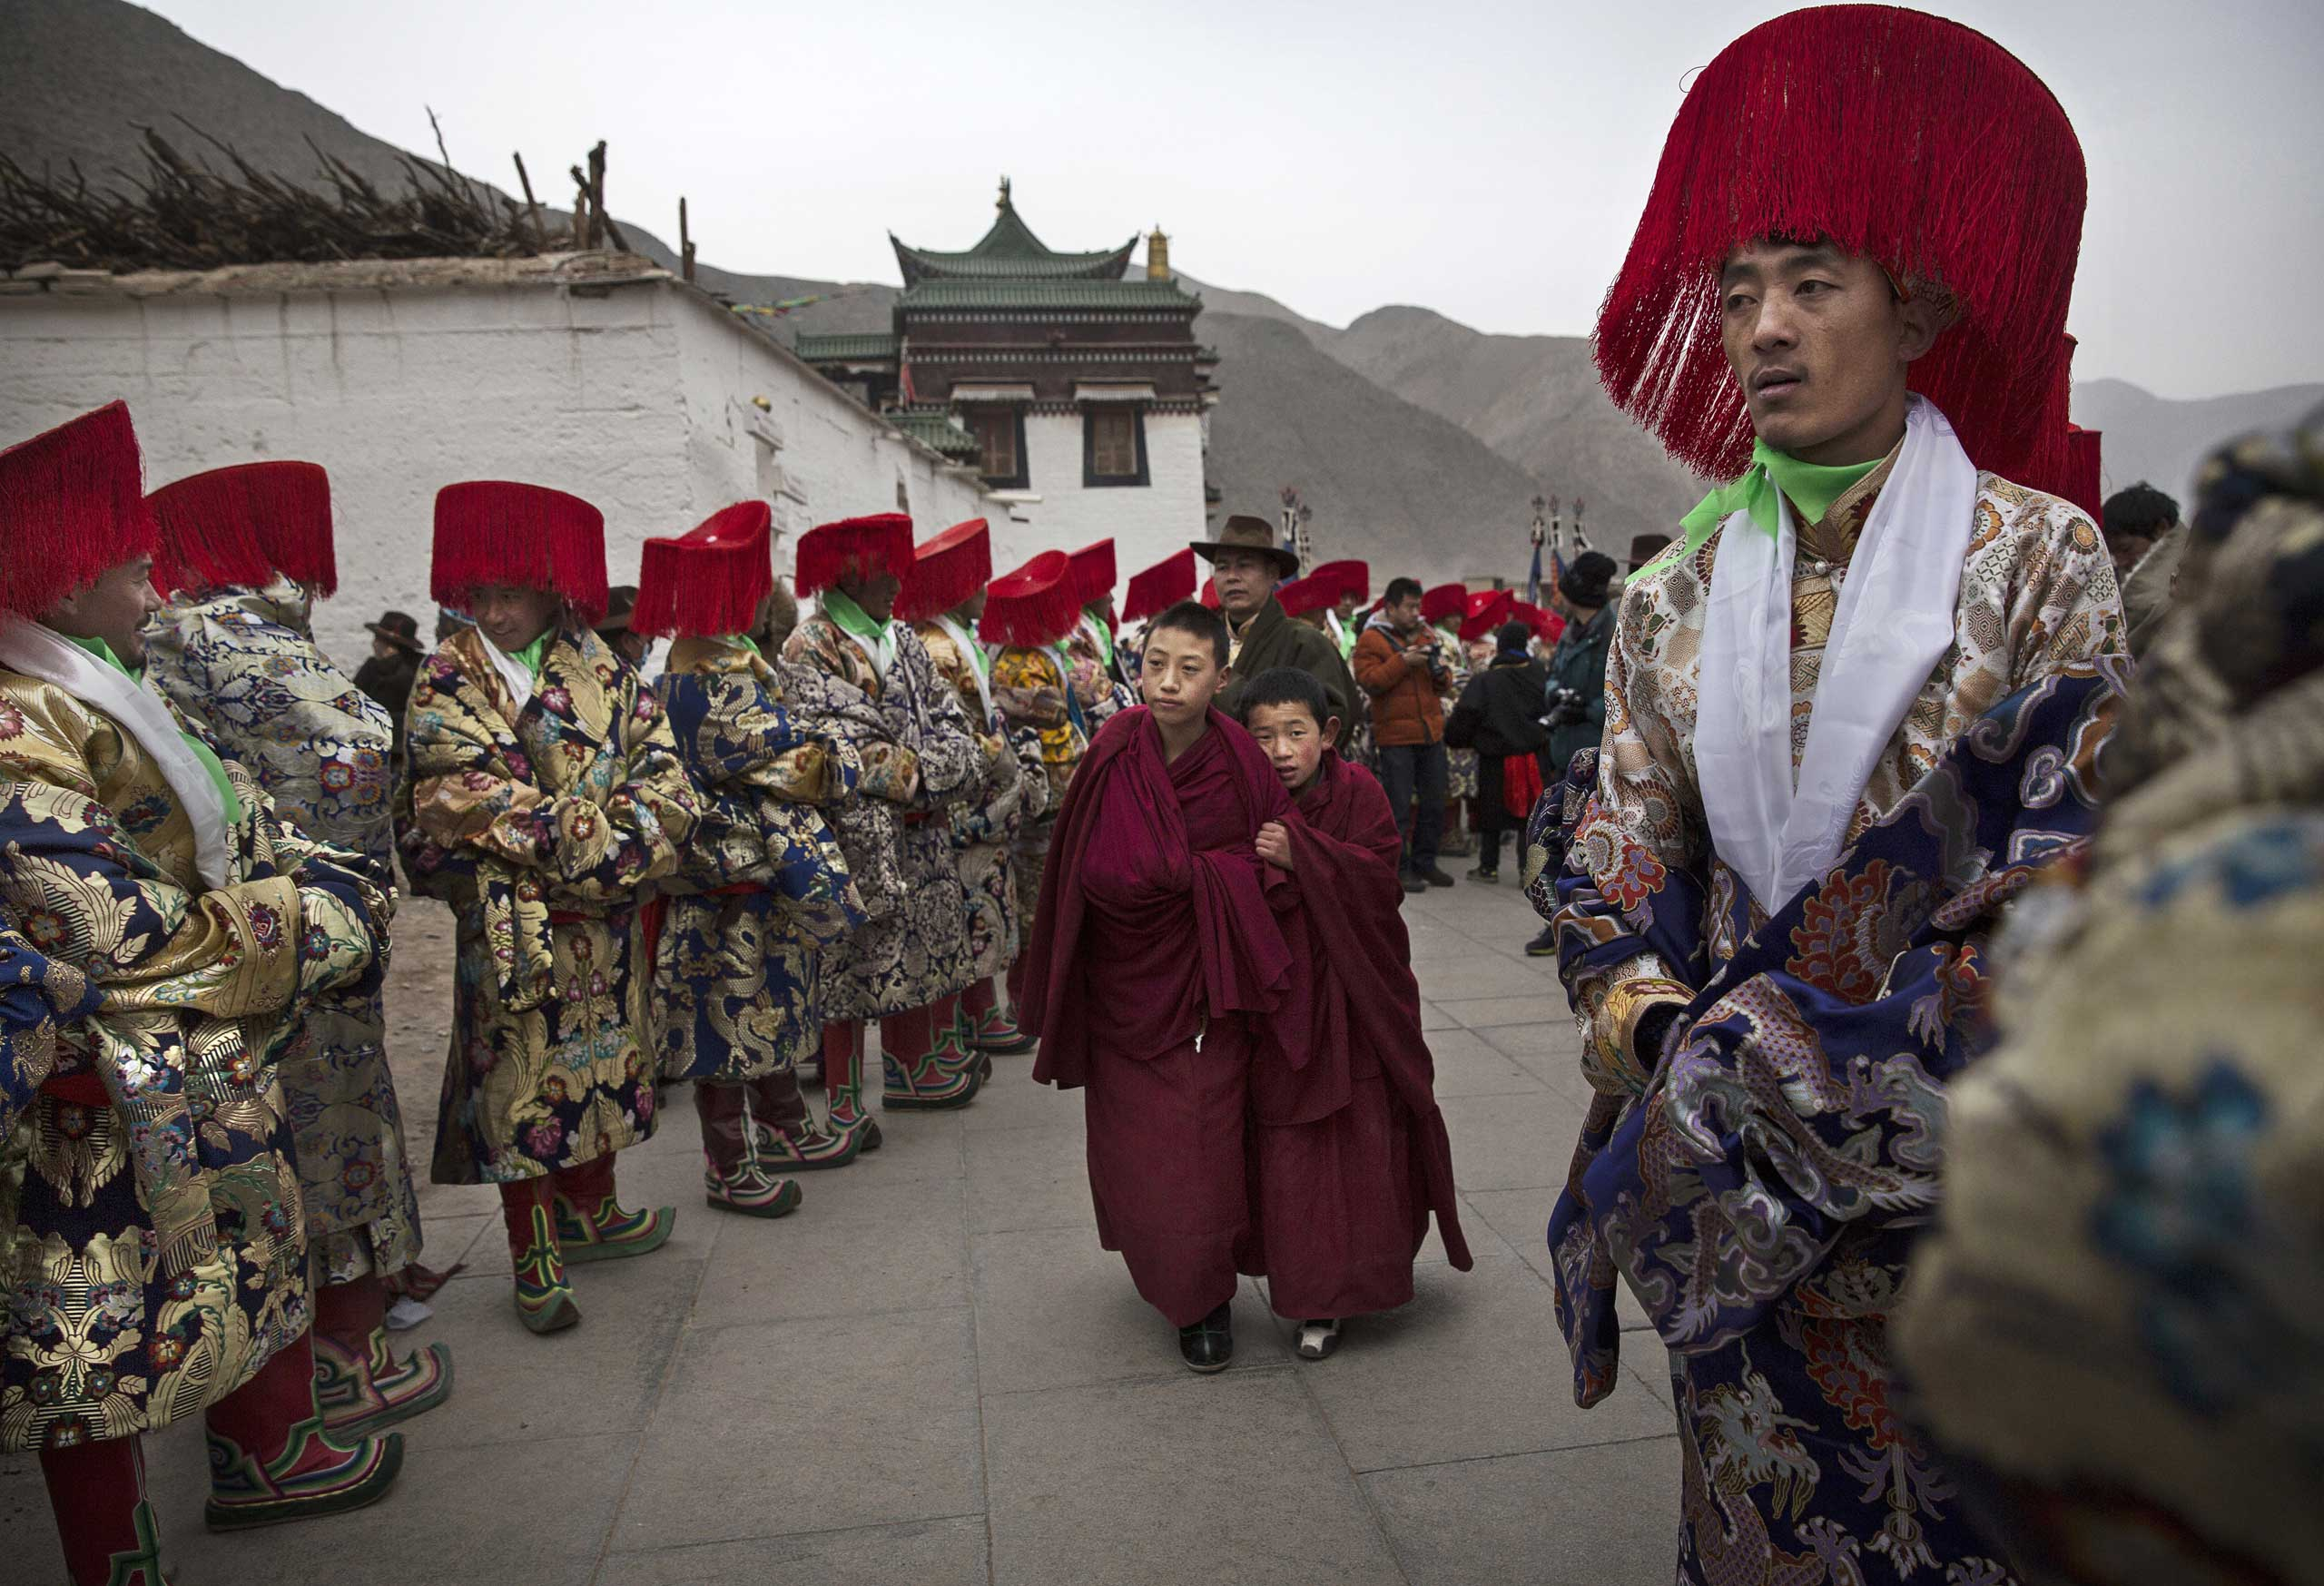 Two young Tibetan Buddhist monks of the Gelug, or Yellow Hat order, walk past men in traditional clothing before a procession during Monlam or the Great Prayer rituals on March 4, 2015 at the Labrang Monastery.